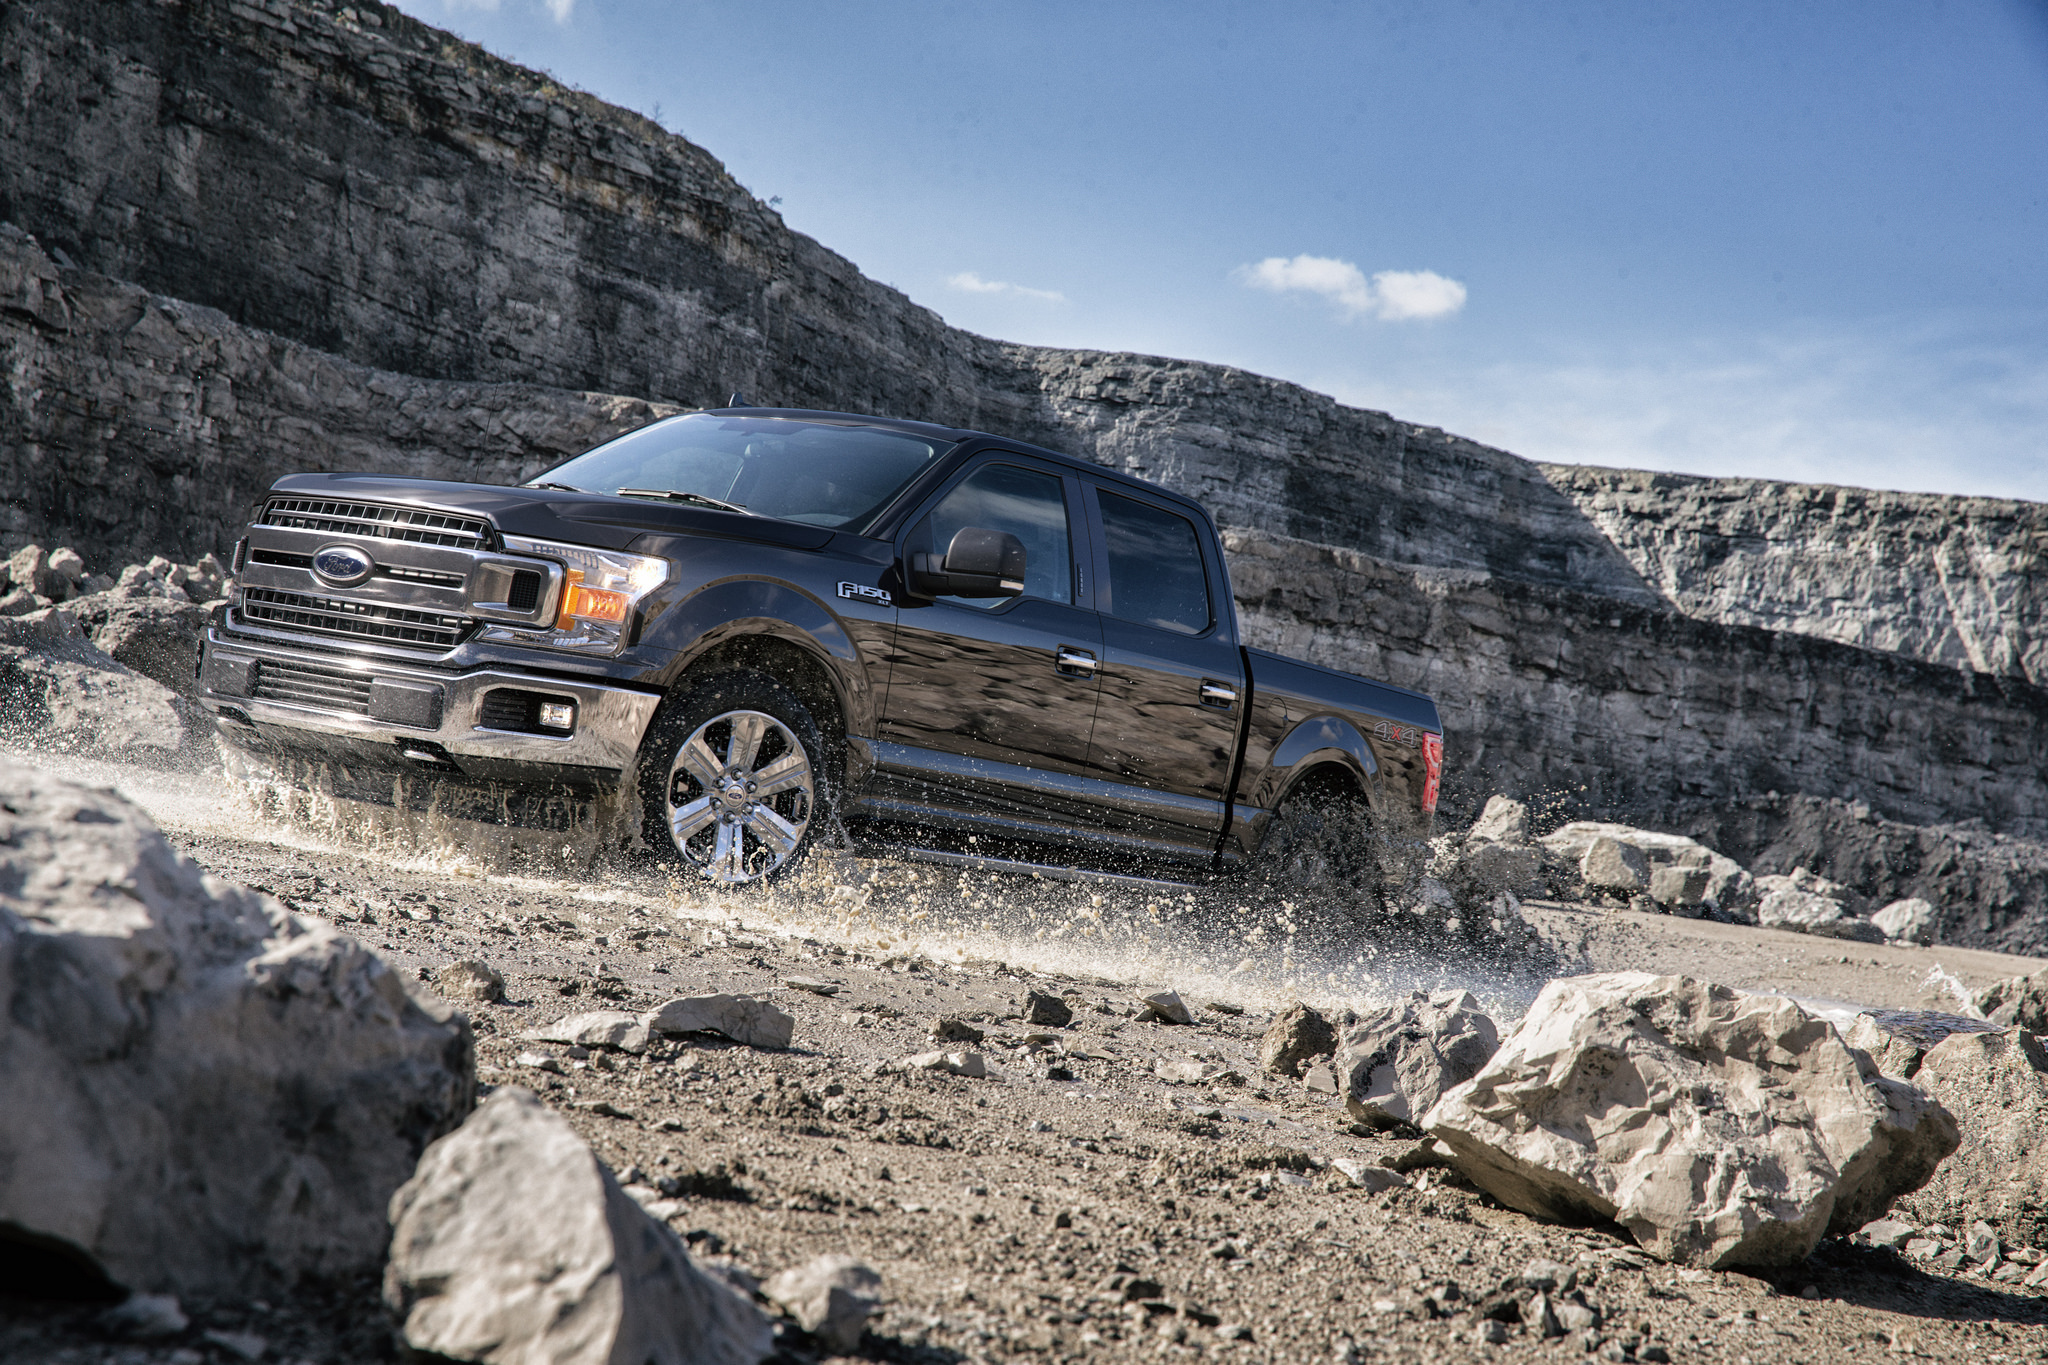 2018 brings the first Ford F-150 Diesel to the lineup.